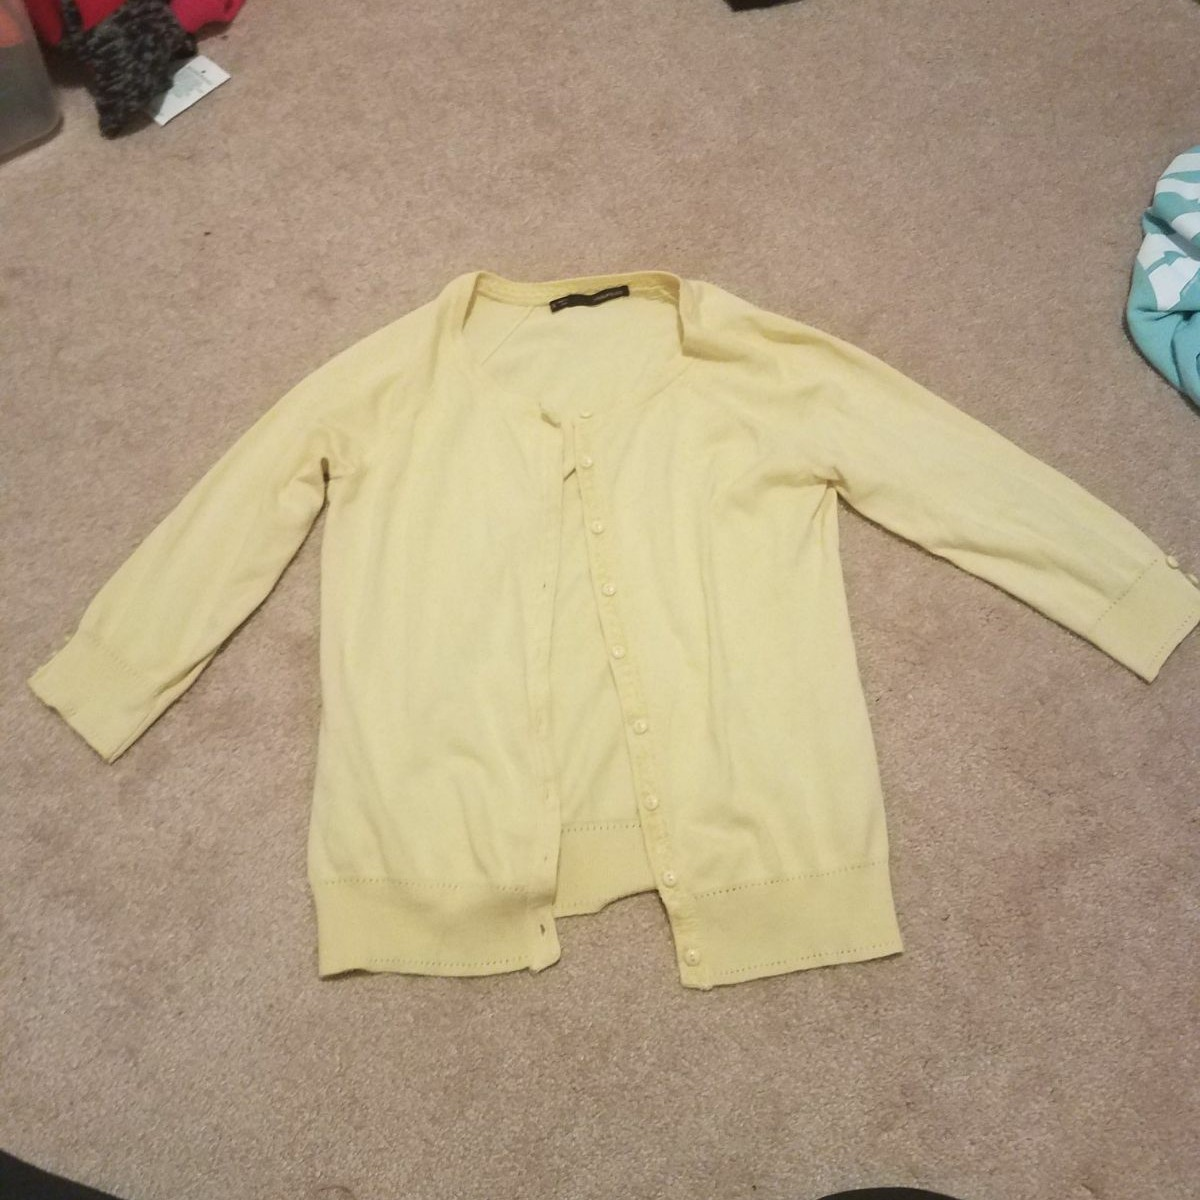 Maurices yellow cardigan small - Mercari: BUY & SELL THINGS YOU LOVE